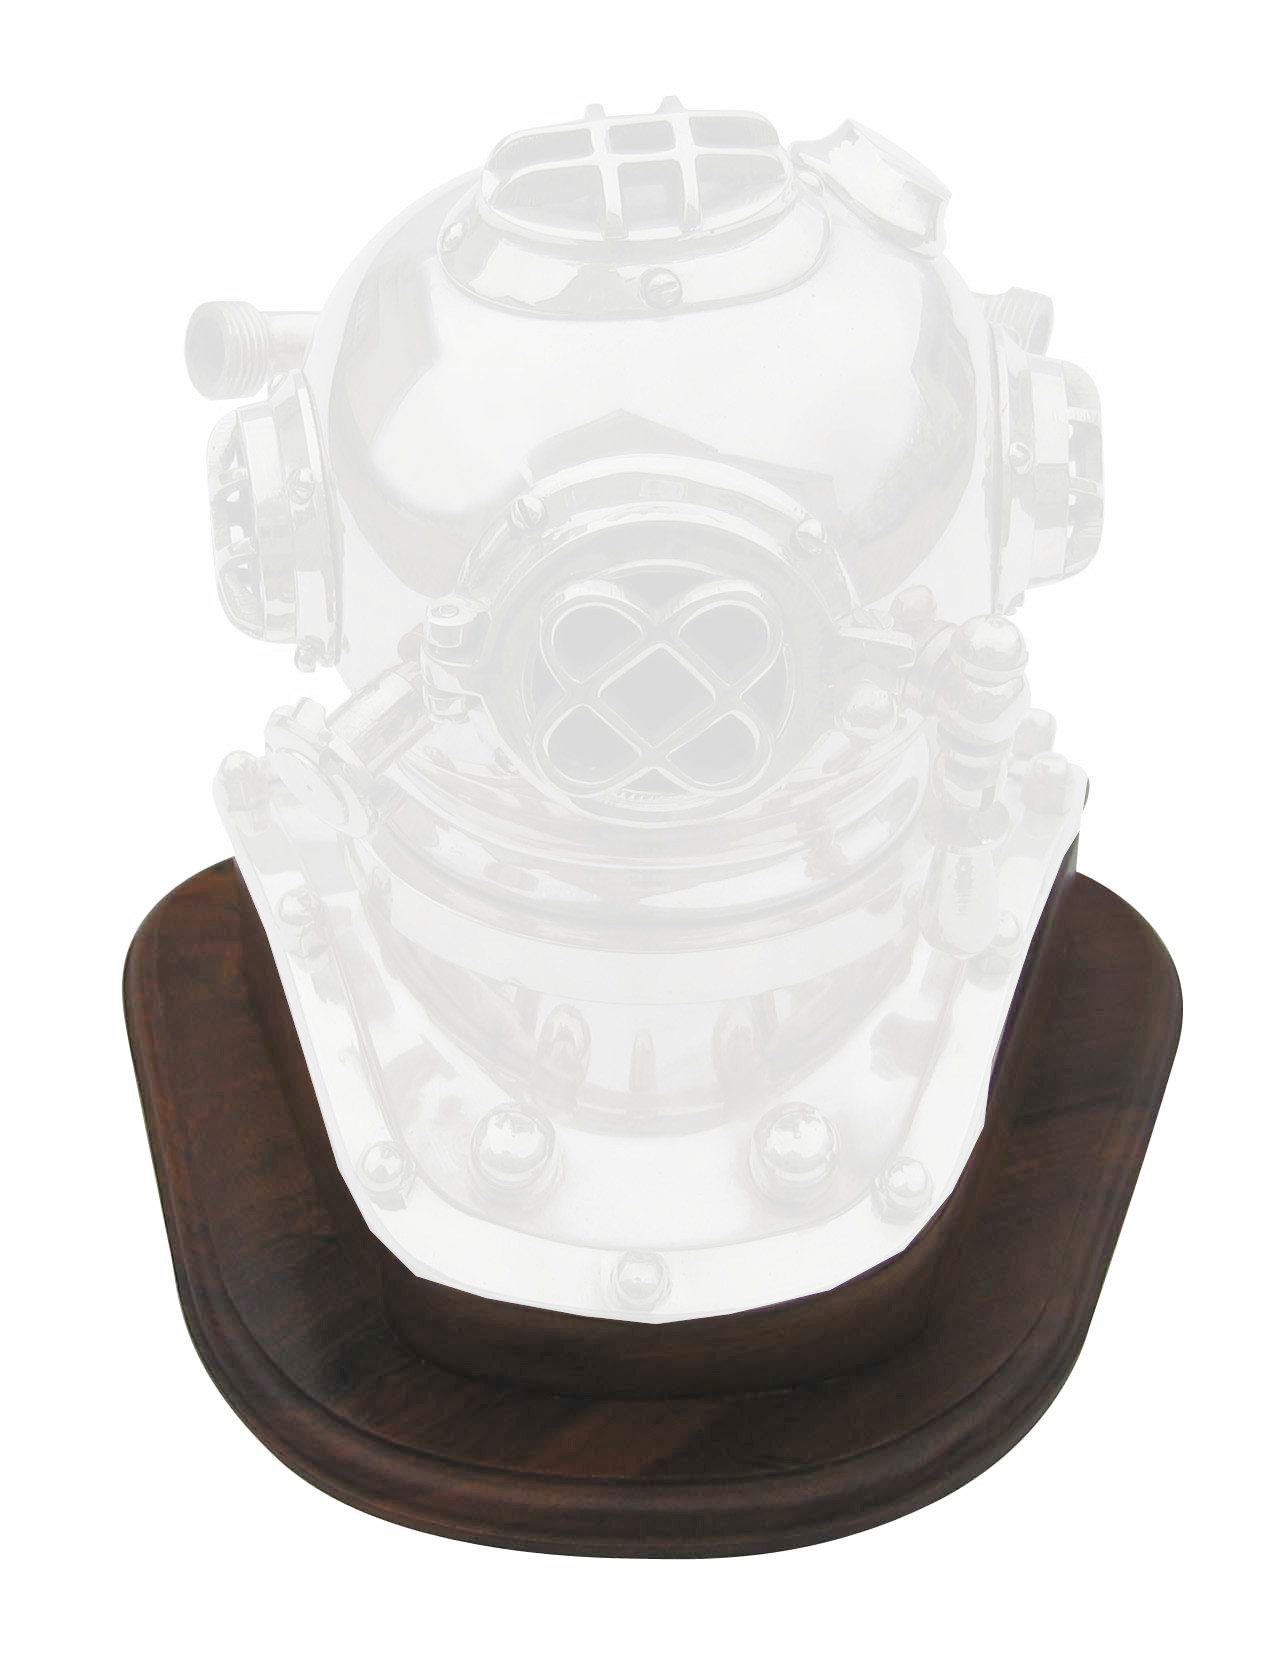 Wooden stand for helmet diver CA-1173 Reference - marine style - marine decoration